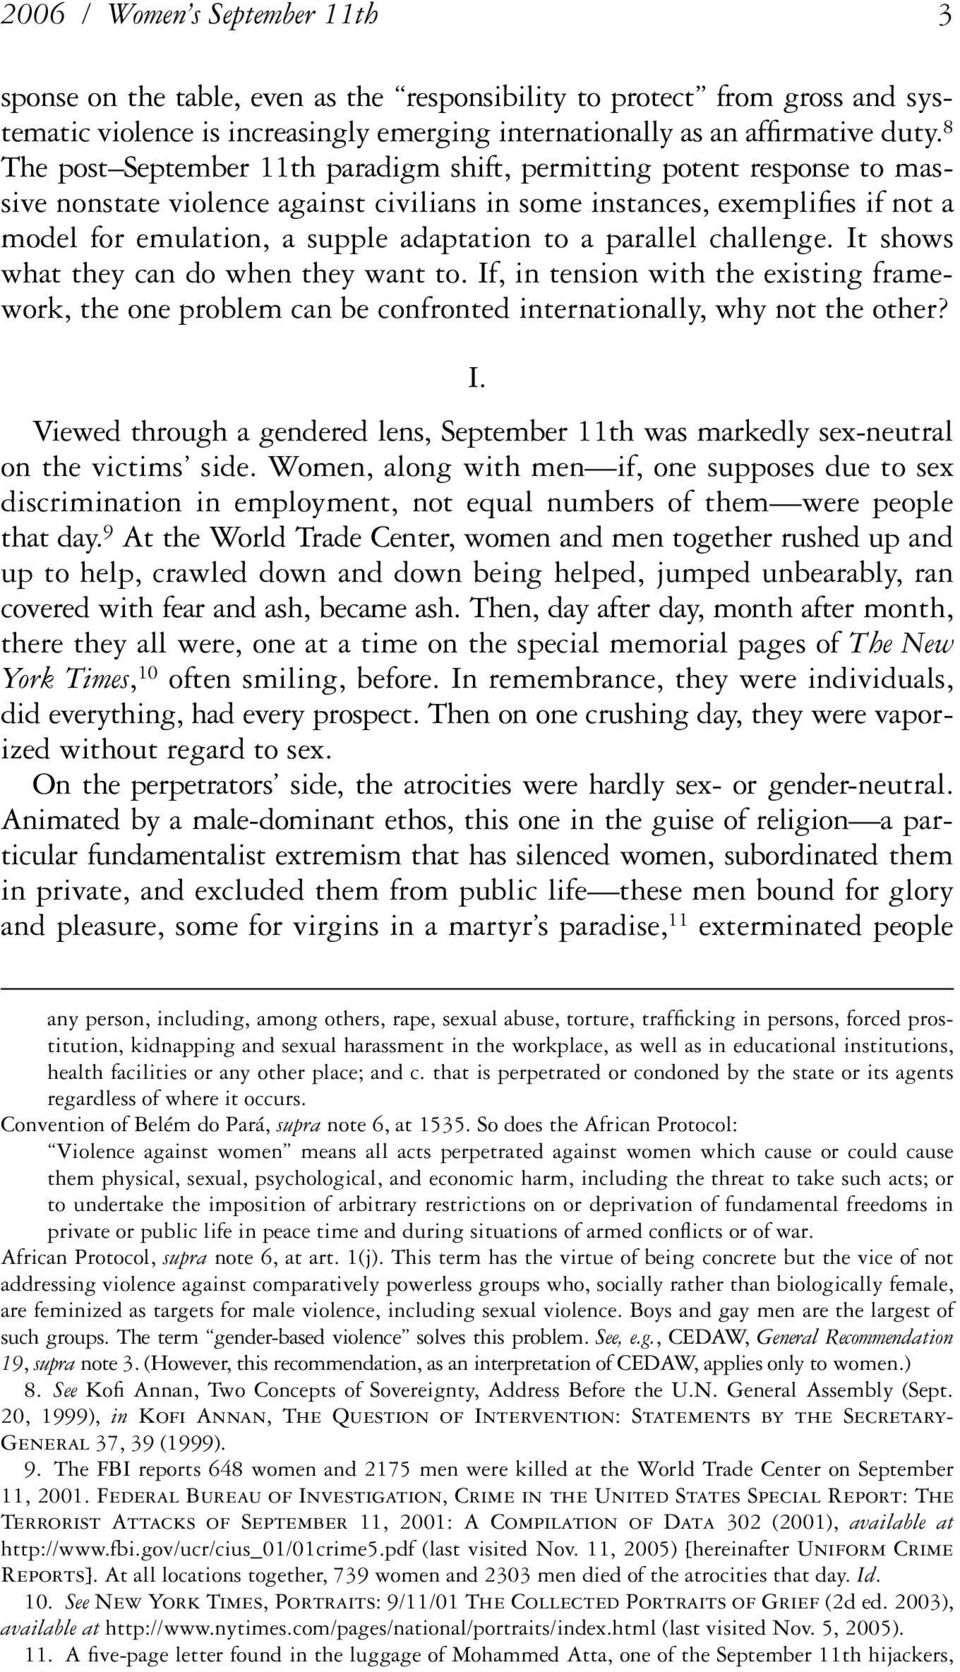 a parallel challenge. It shows what they can do when they want to. If, in tension with the existing framework, the one problem can be confronted internationally, why not the other? I. Viewed through a gendered lens, September 11th was markedly sex-neutral on the victims side.